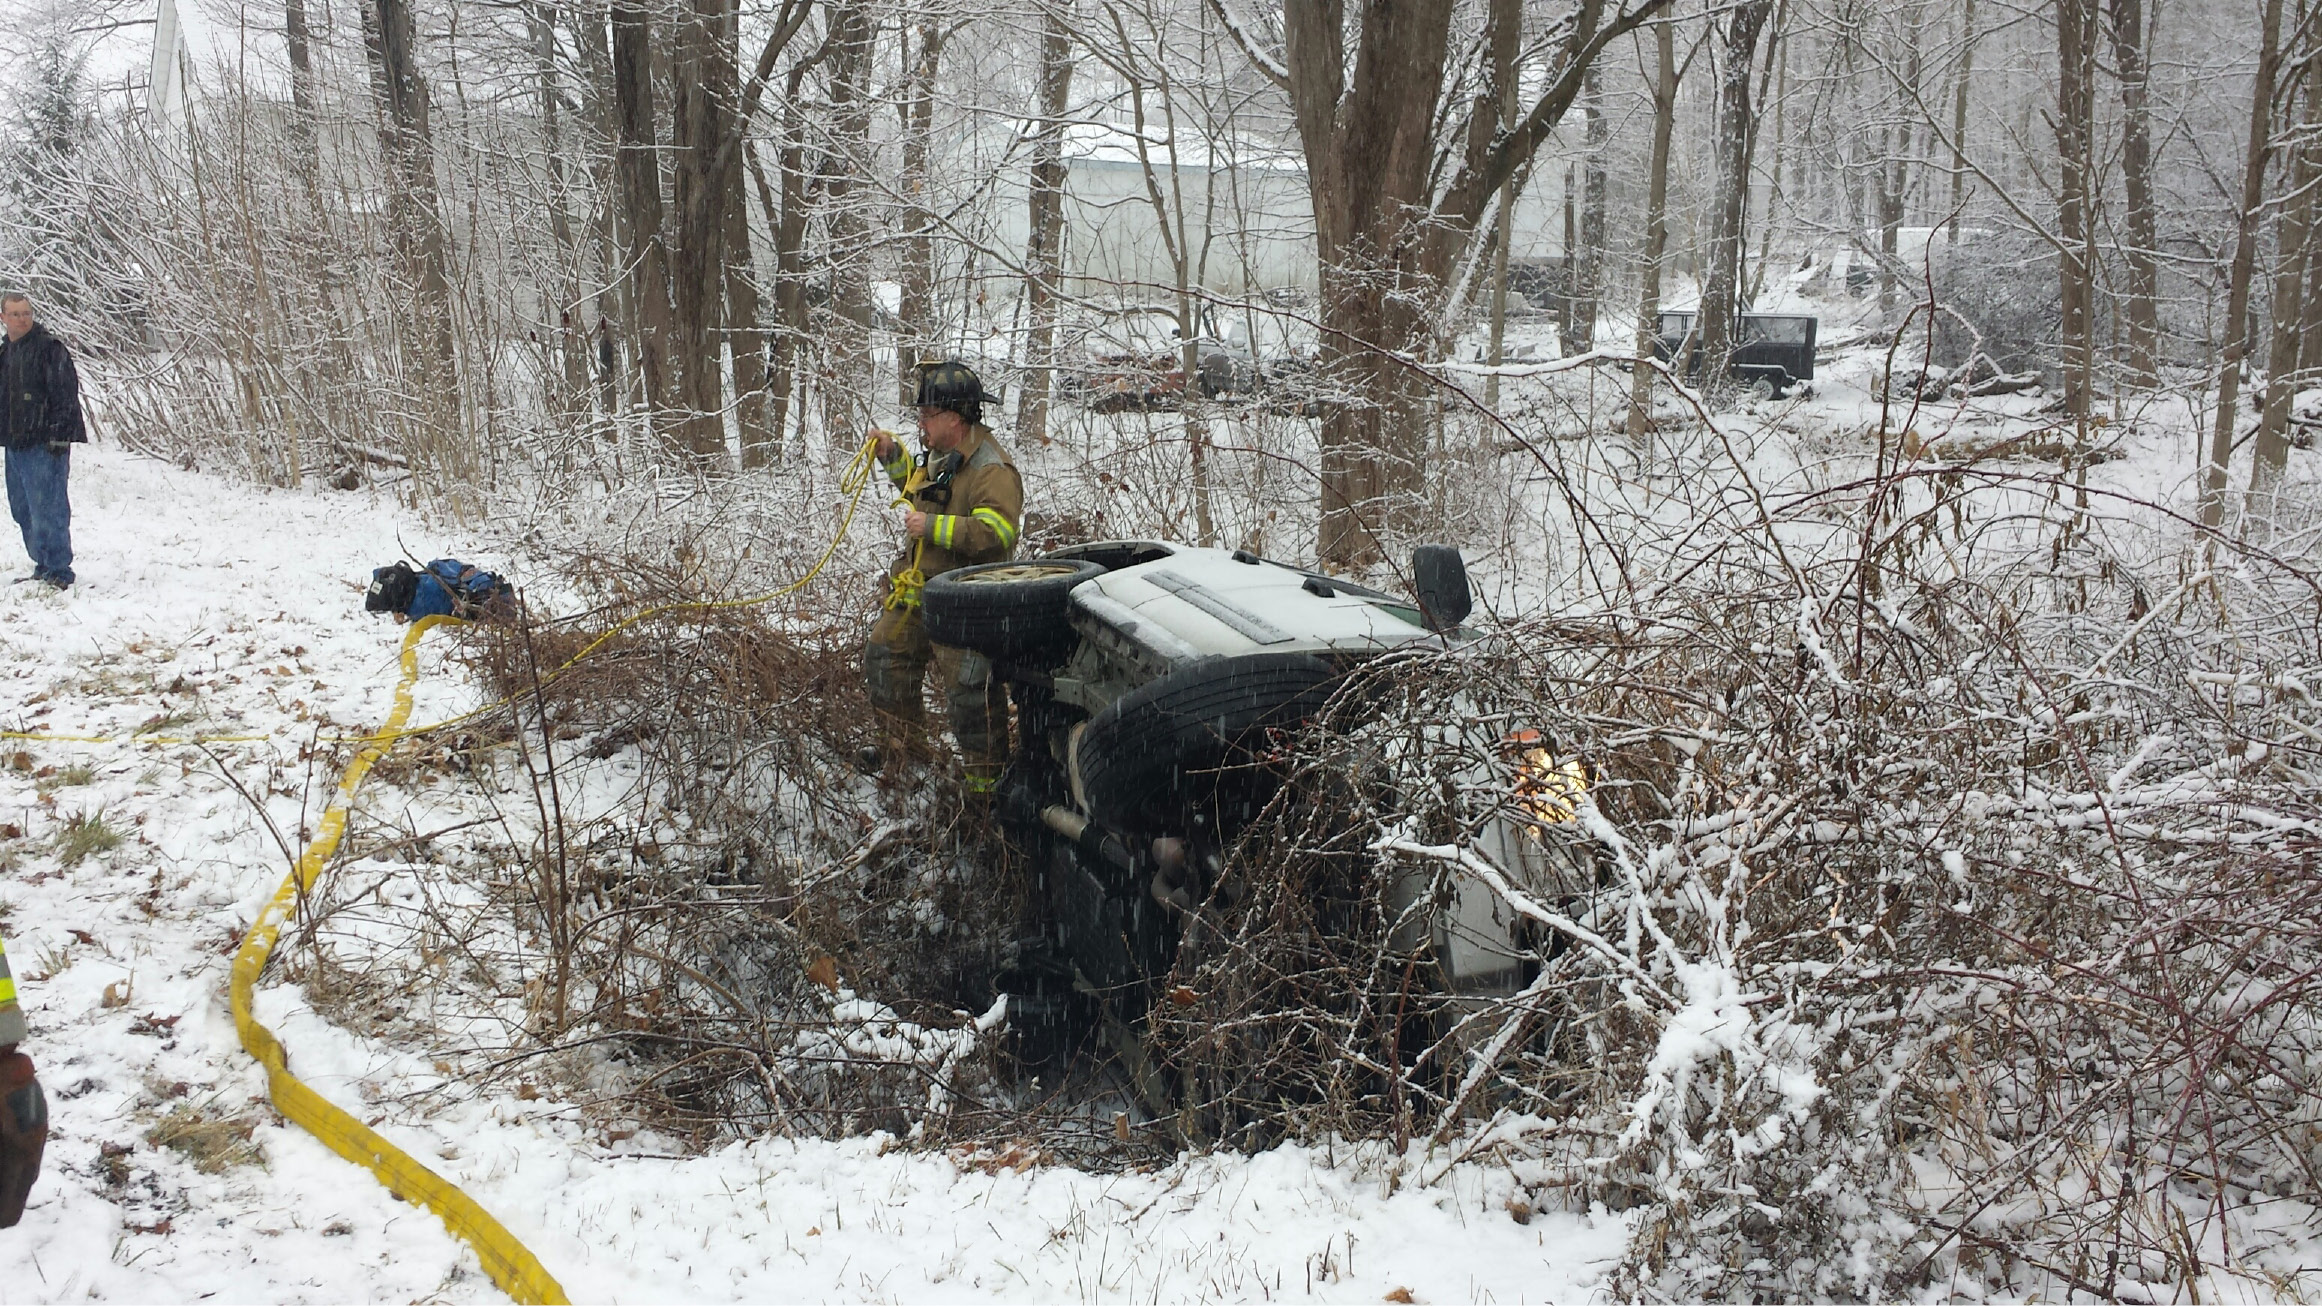 A Jeep rolled over on Hanover Avenue Monday morning due to the slippery roads from the snow. The driver was uninjured. (Lauren Sievert Record-Journal)